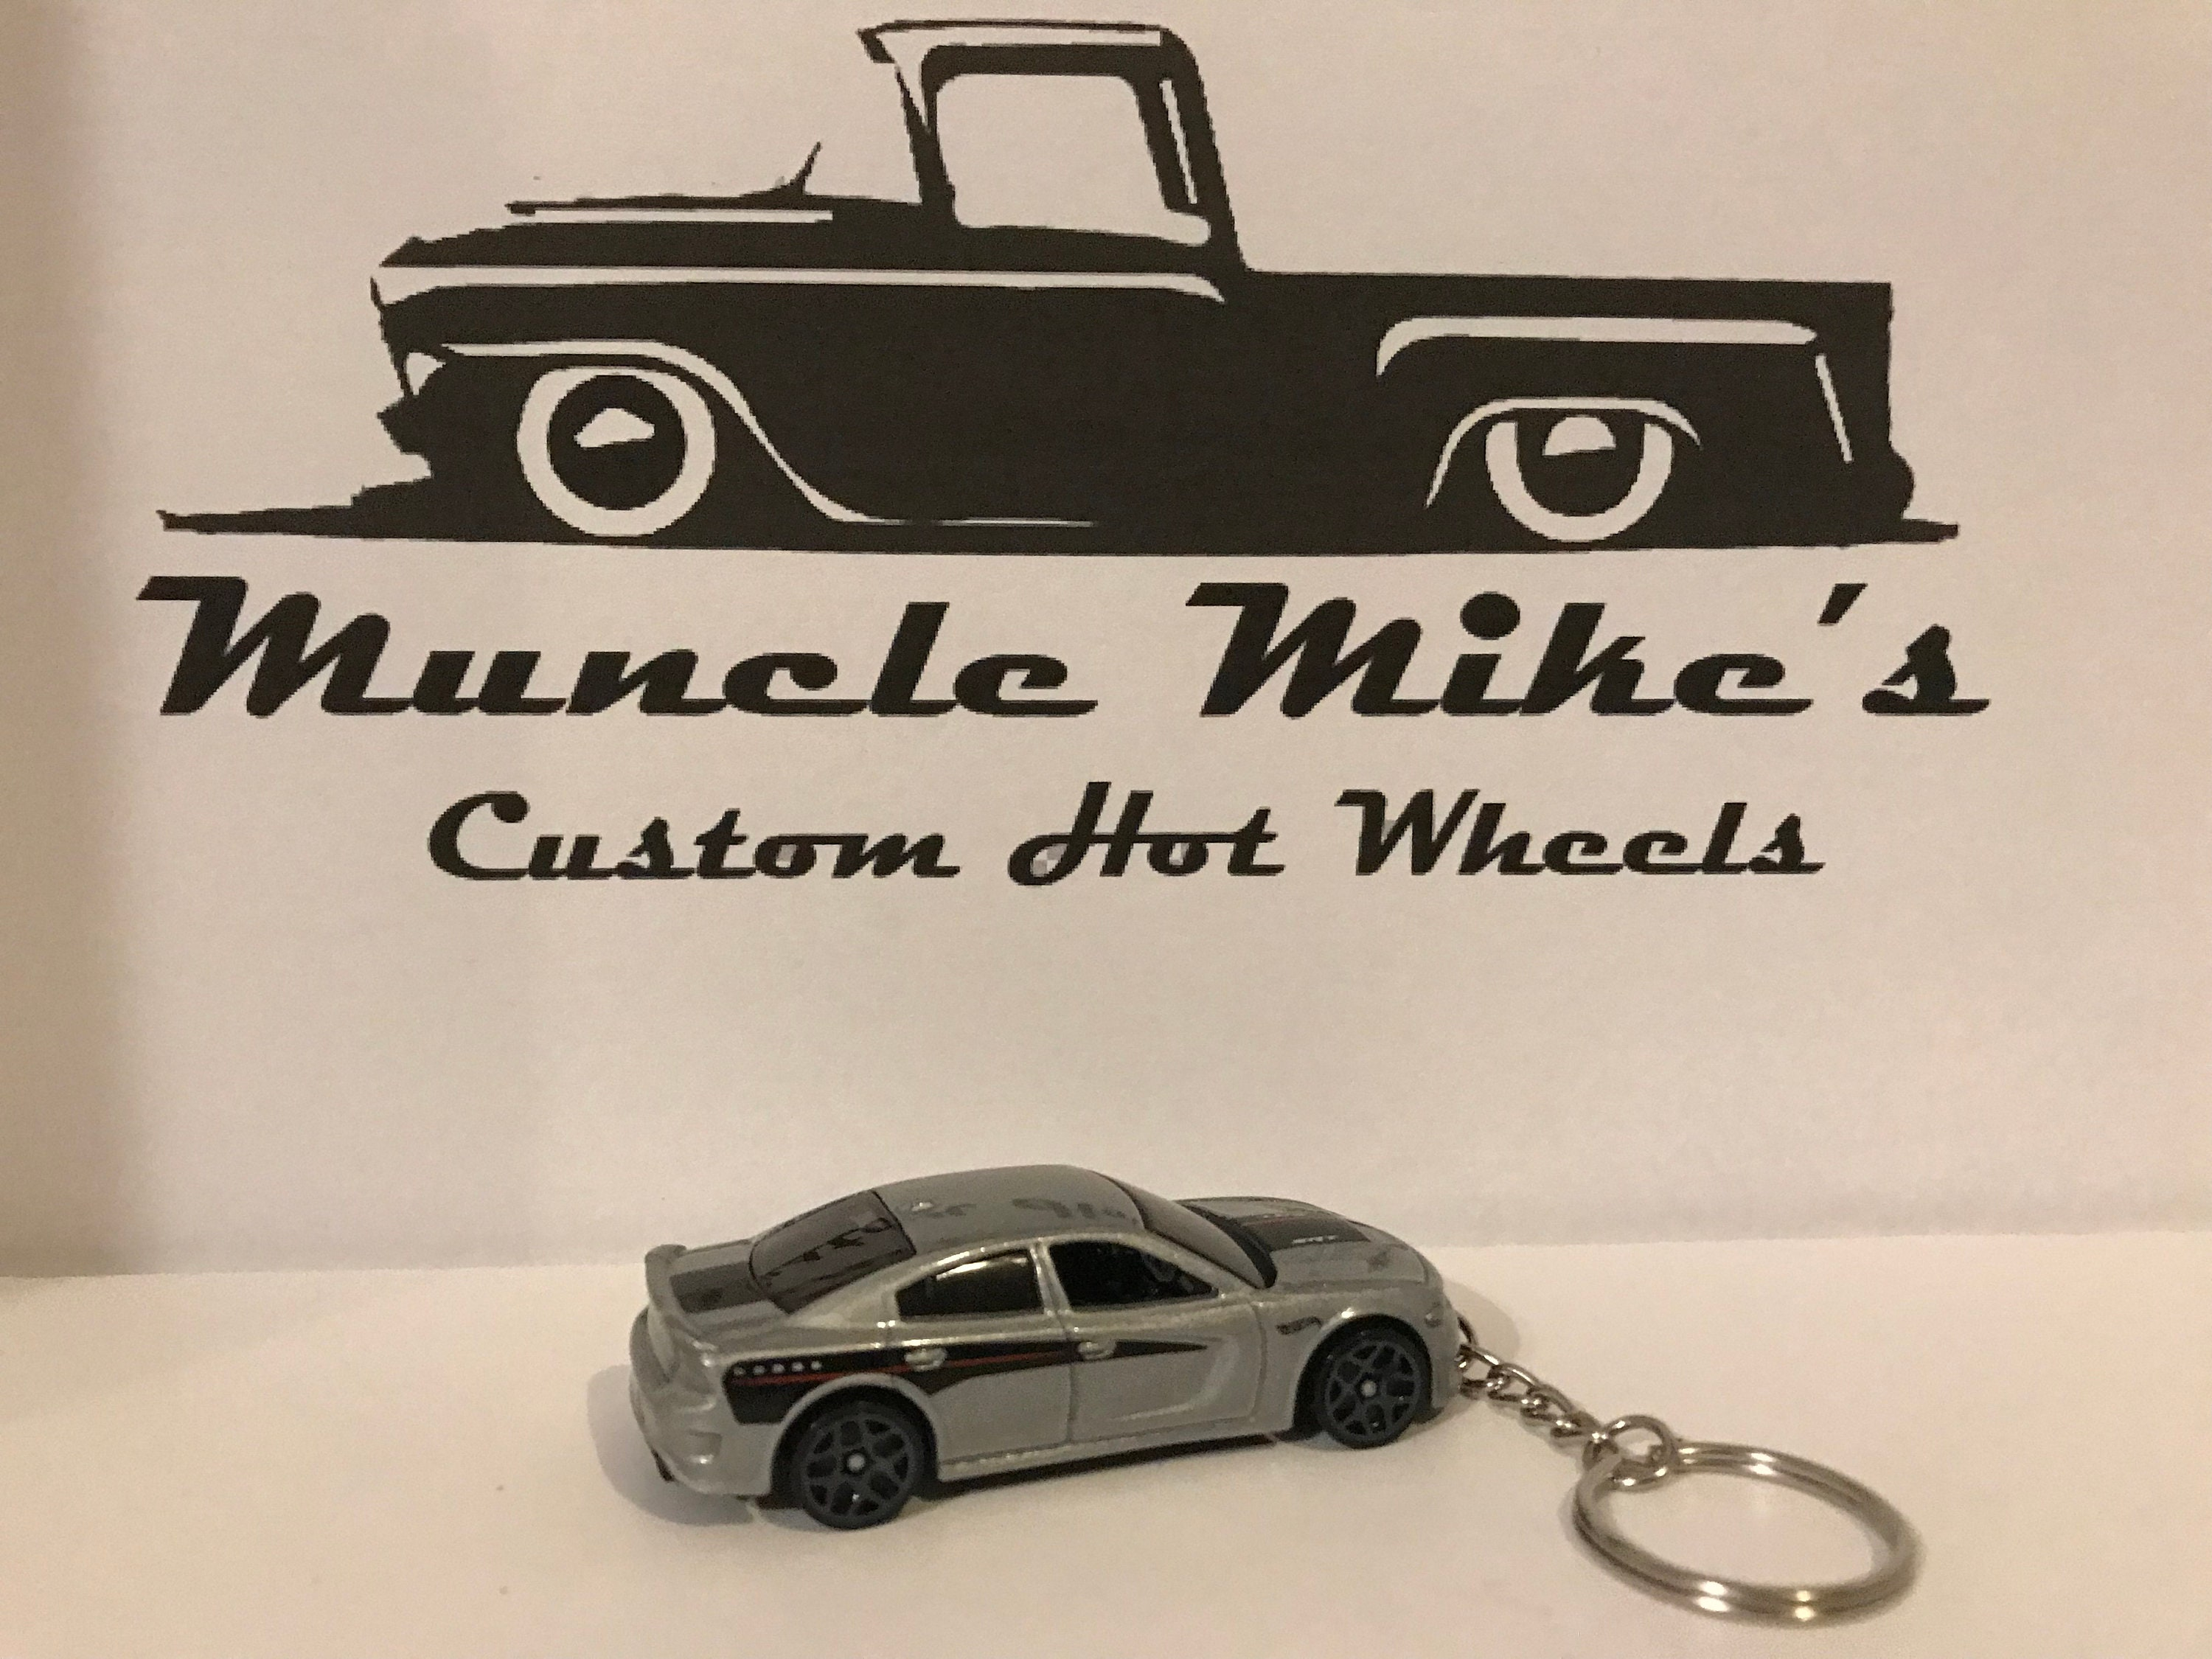 Custom Hot Wheels 2015 Dodge Charger key chain keychain